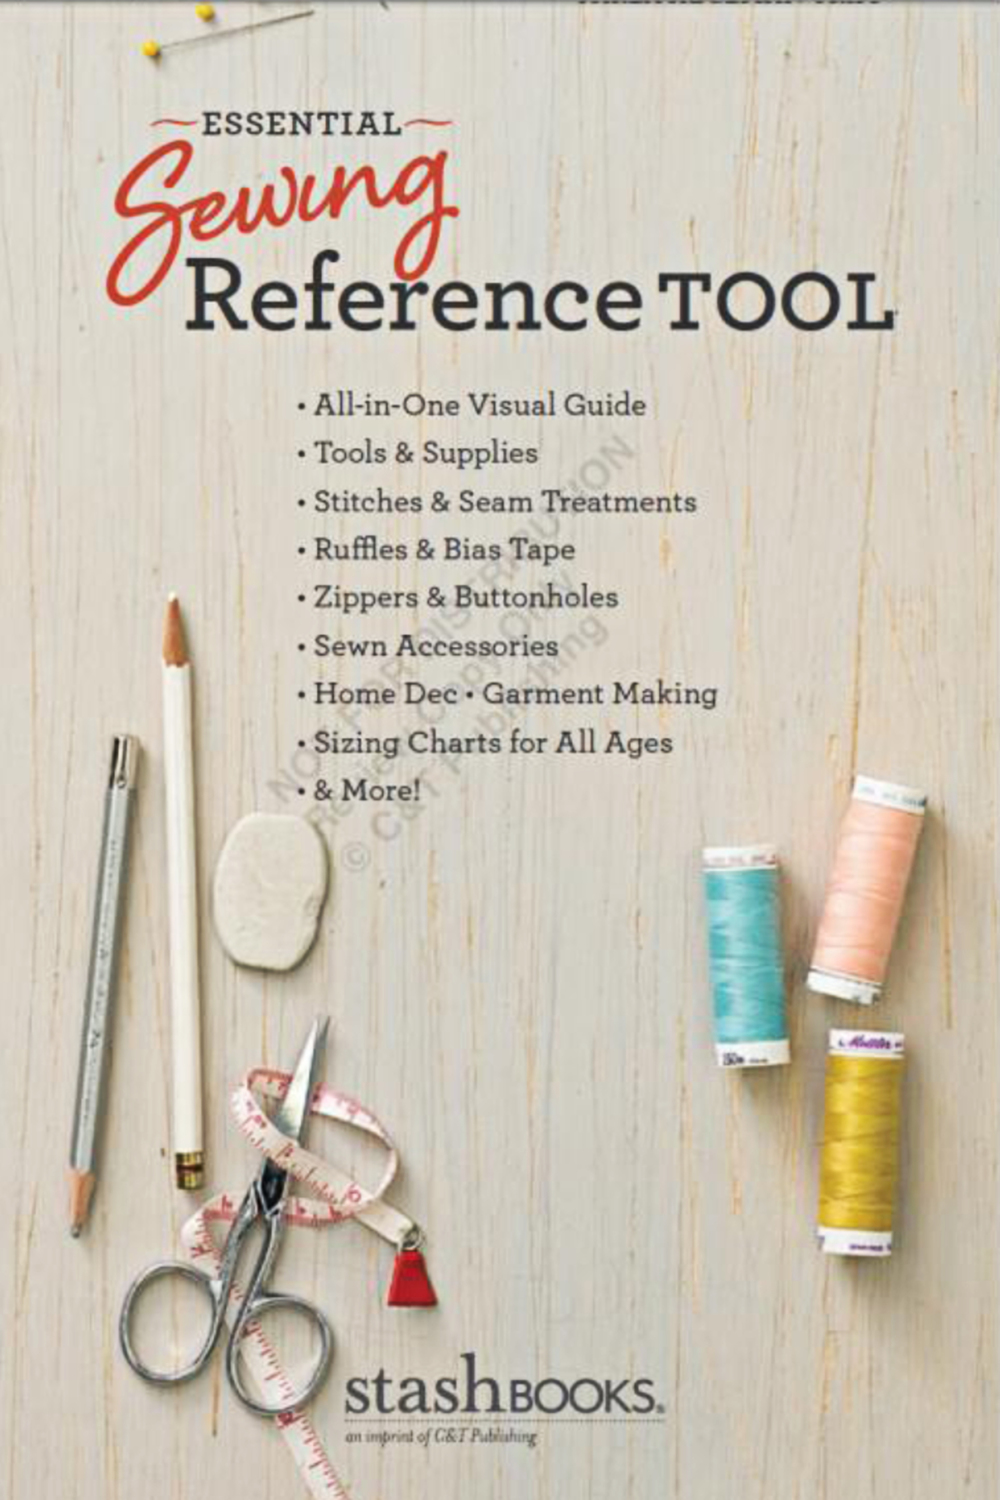 sewing refference tool.jpg